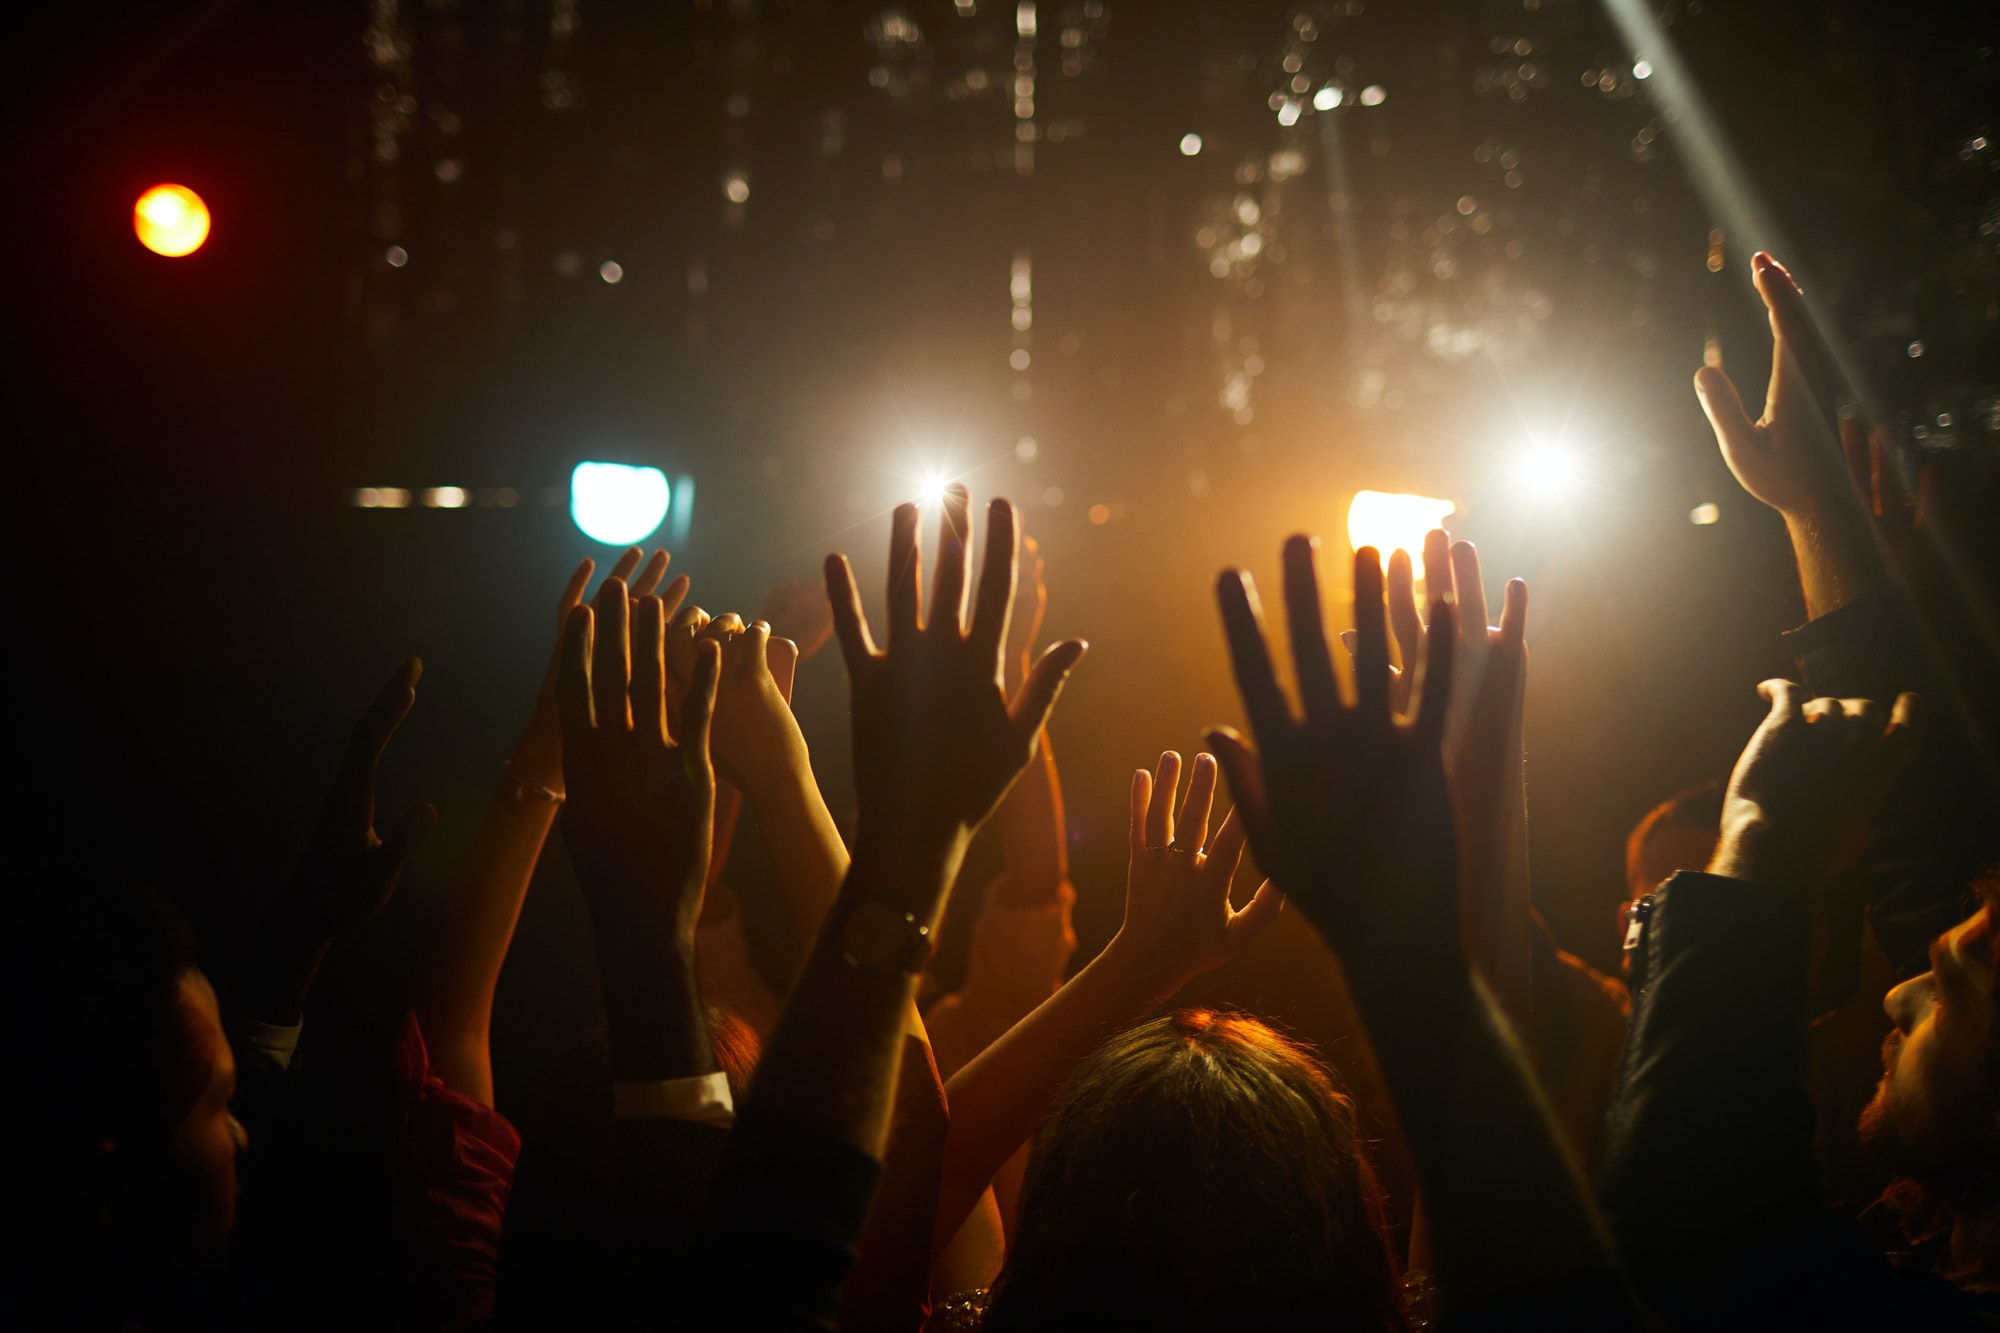 People waving hands at concert